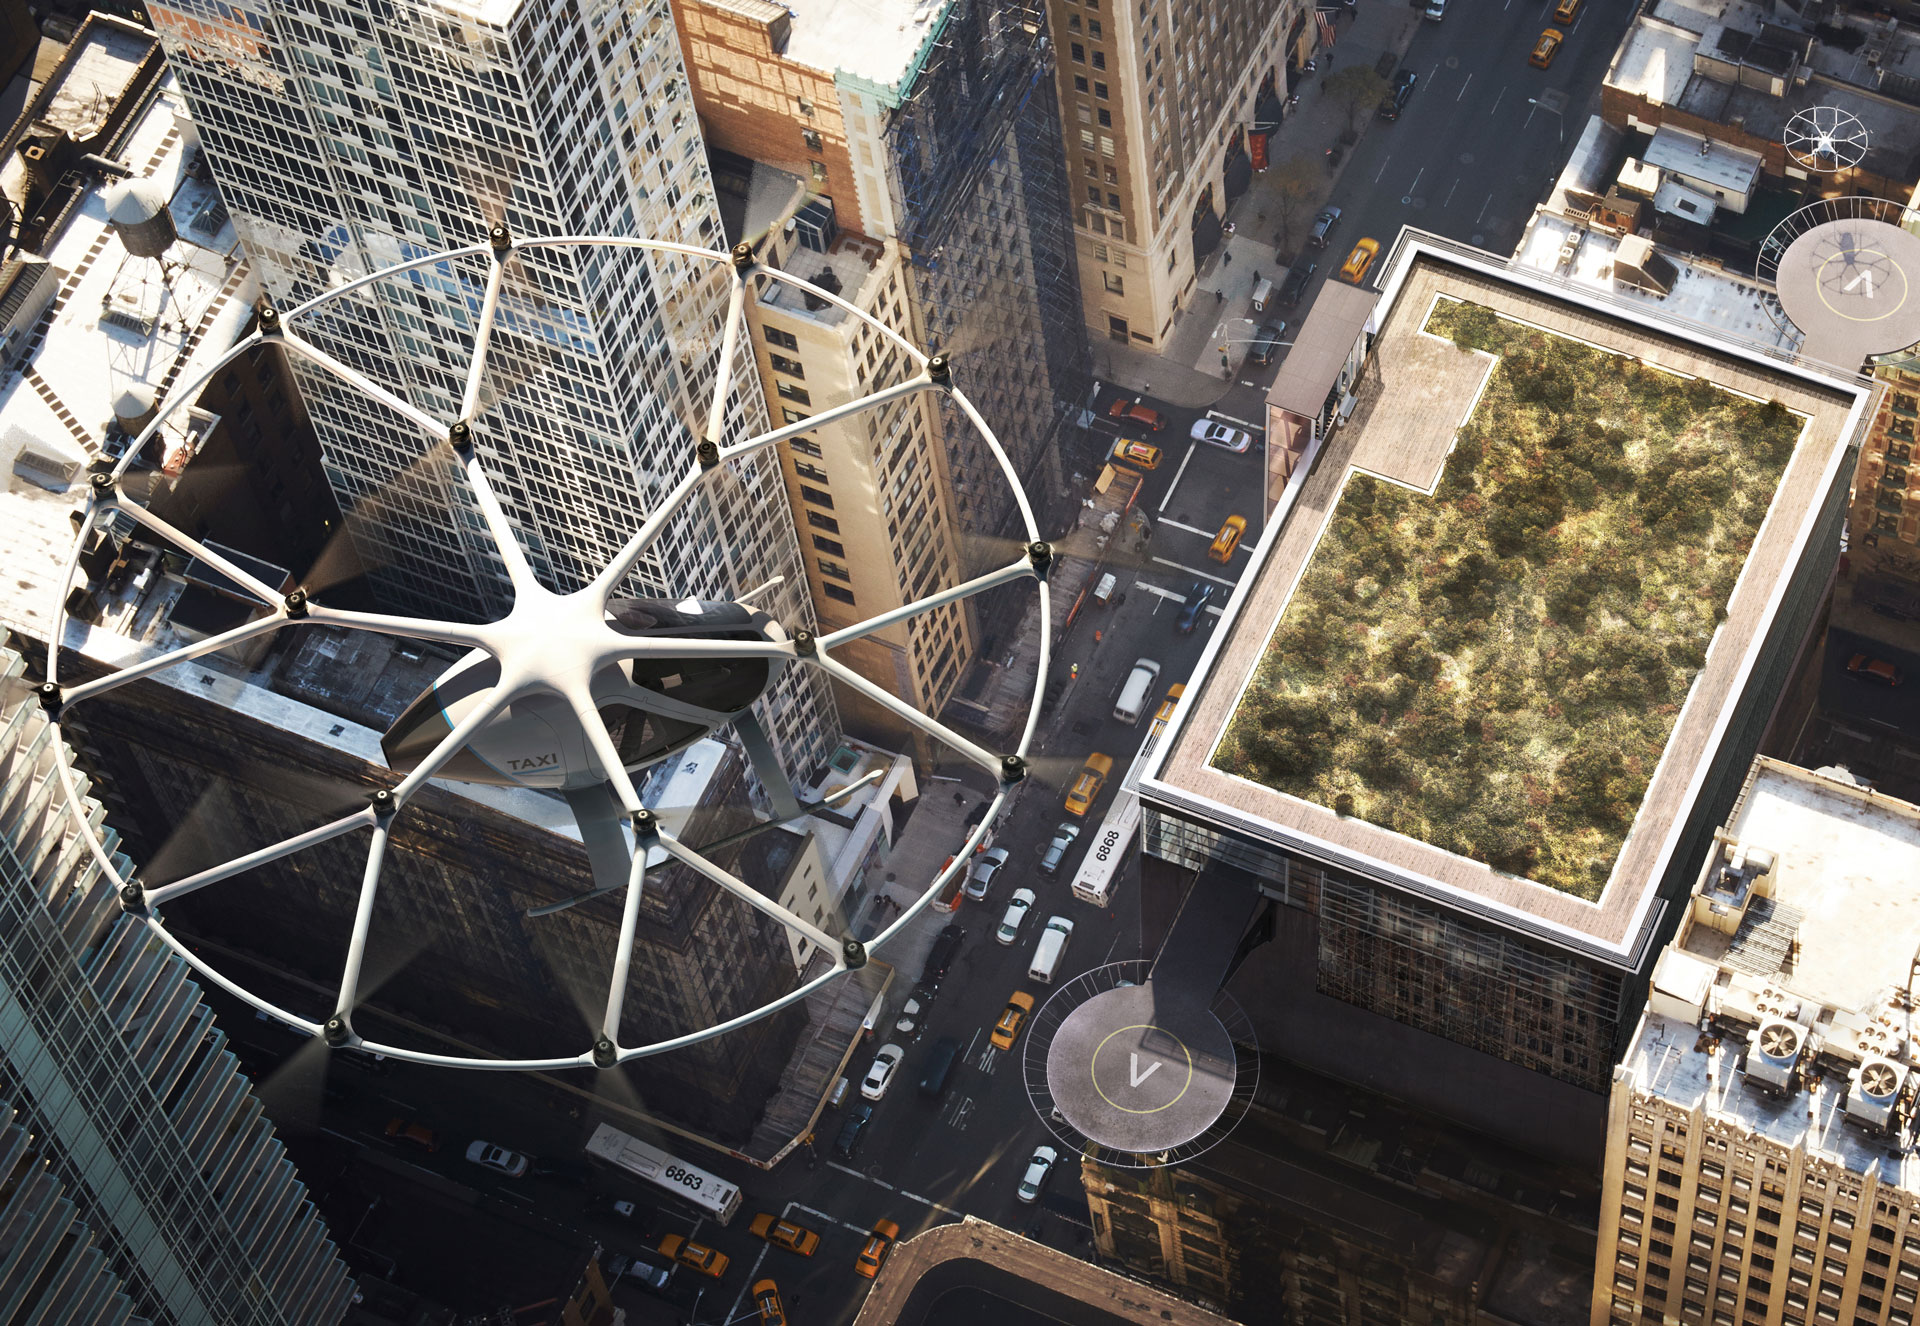 Flying cars of the future: Why they won't be cars at all